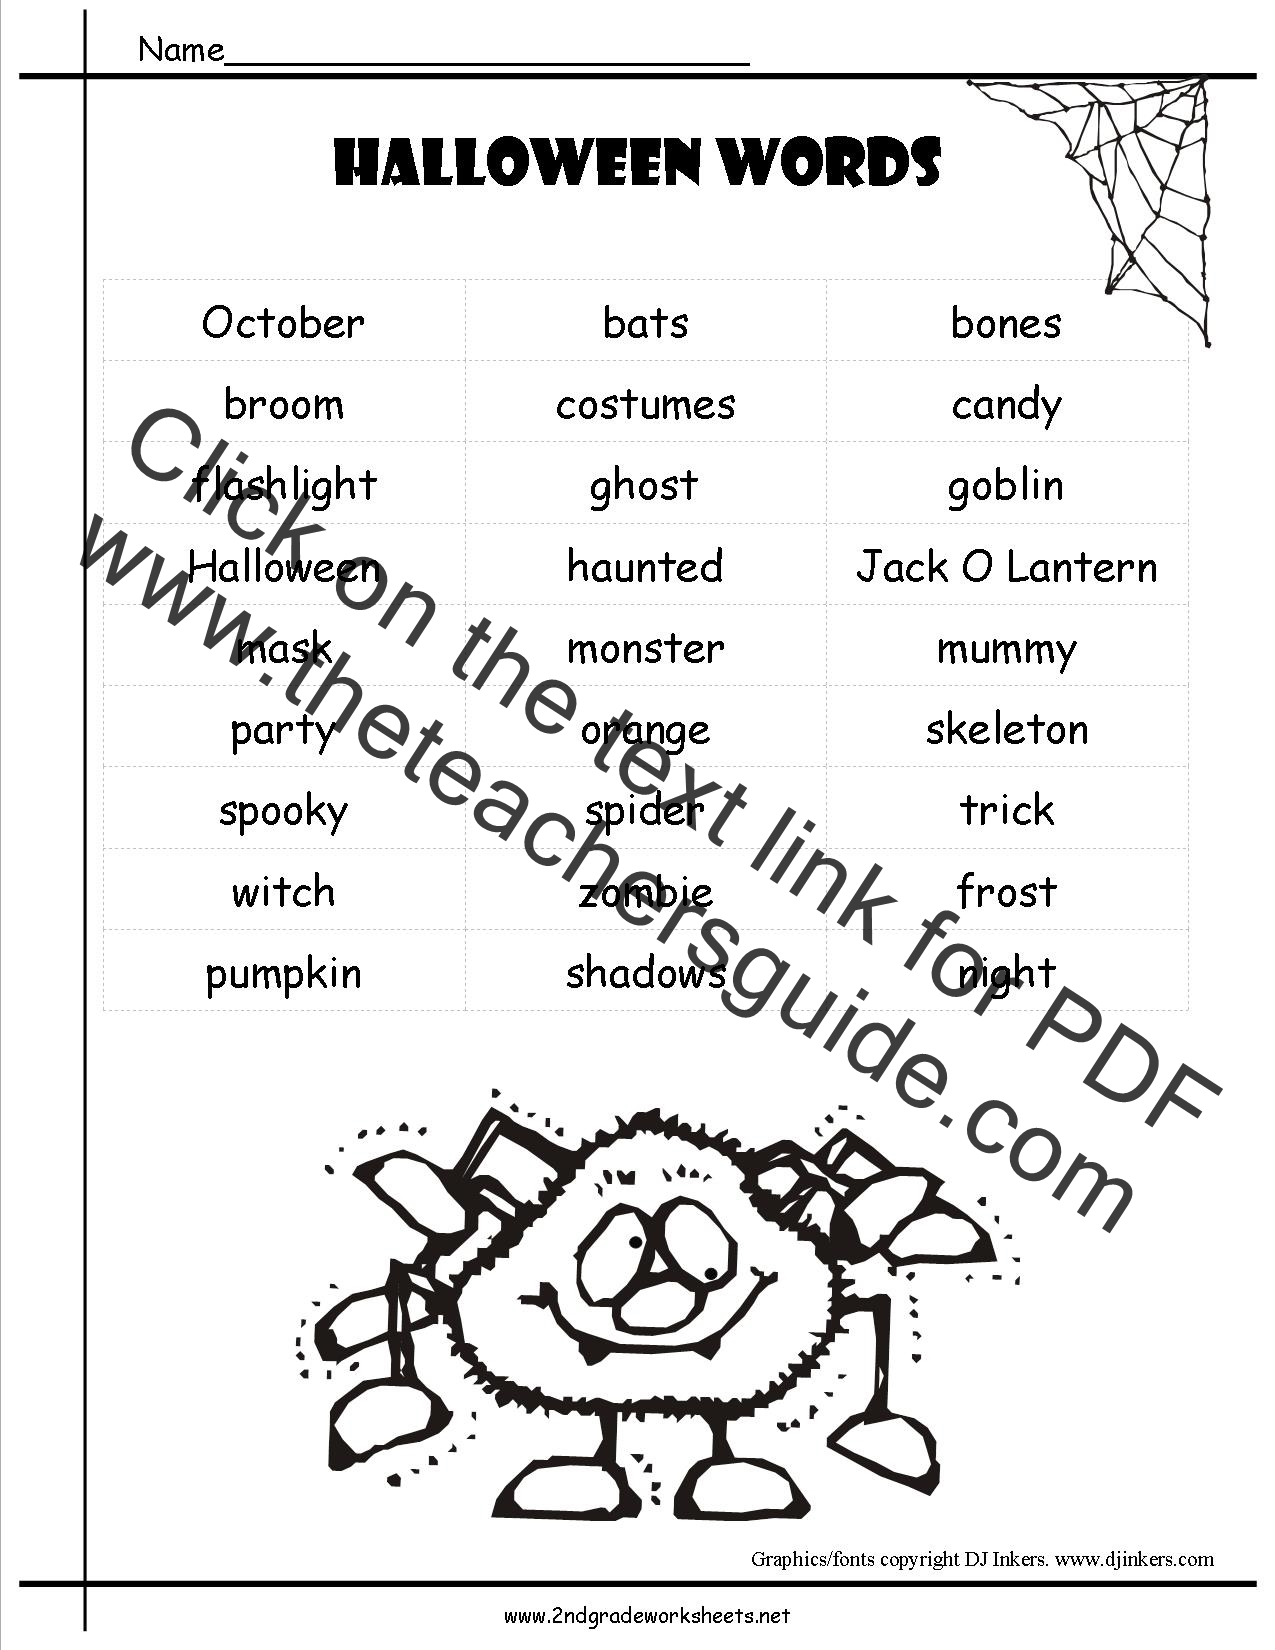 Worksheets Halloween Printable Worksheets halloween worksheets and printouts word list